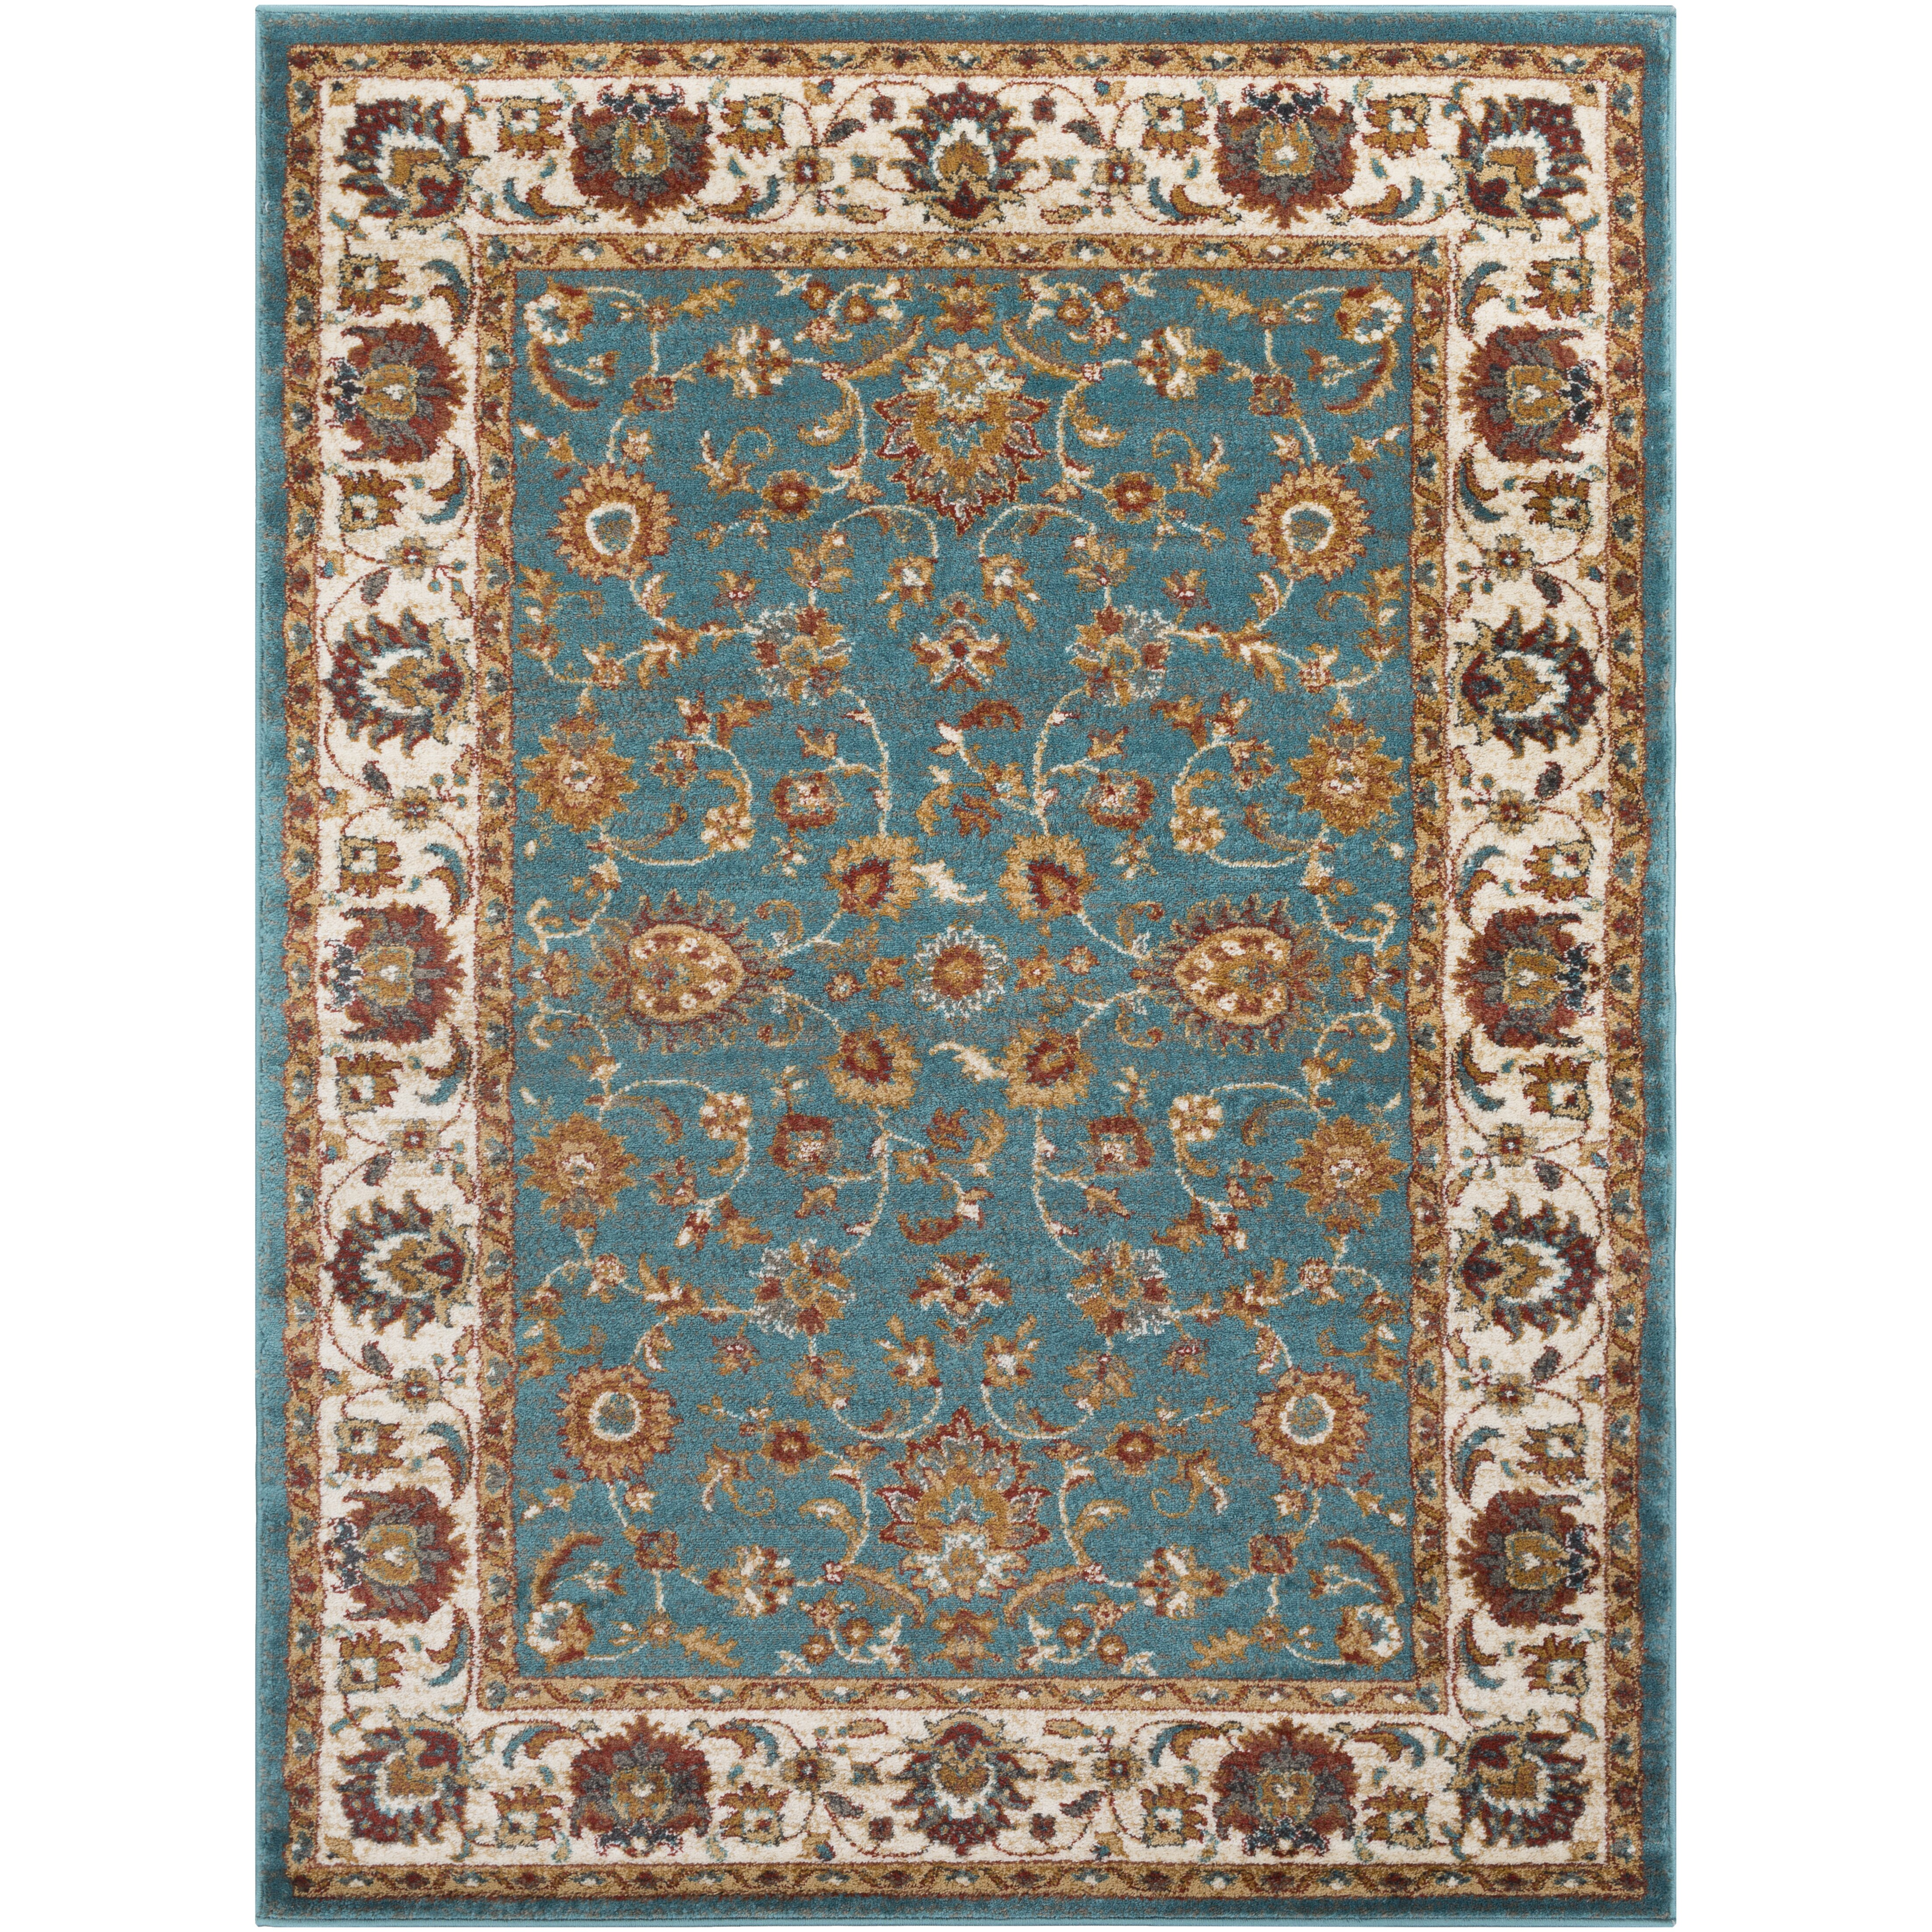 Teal And Gold Rug Home Decor